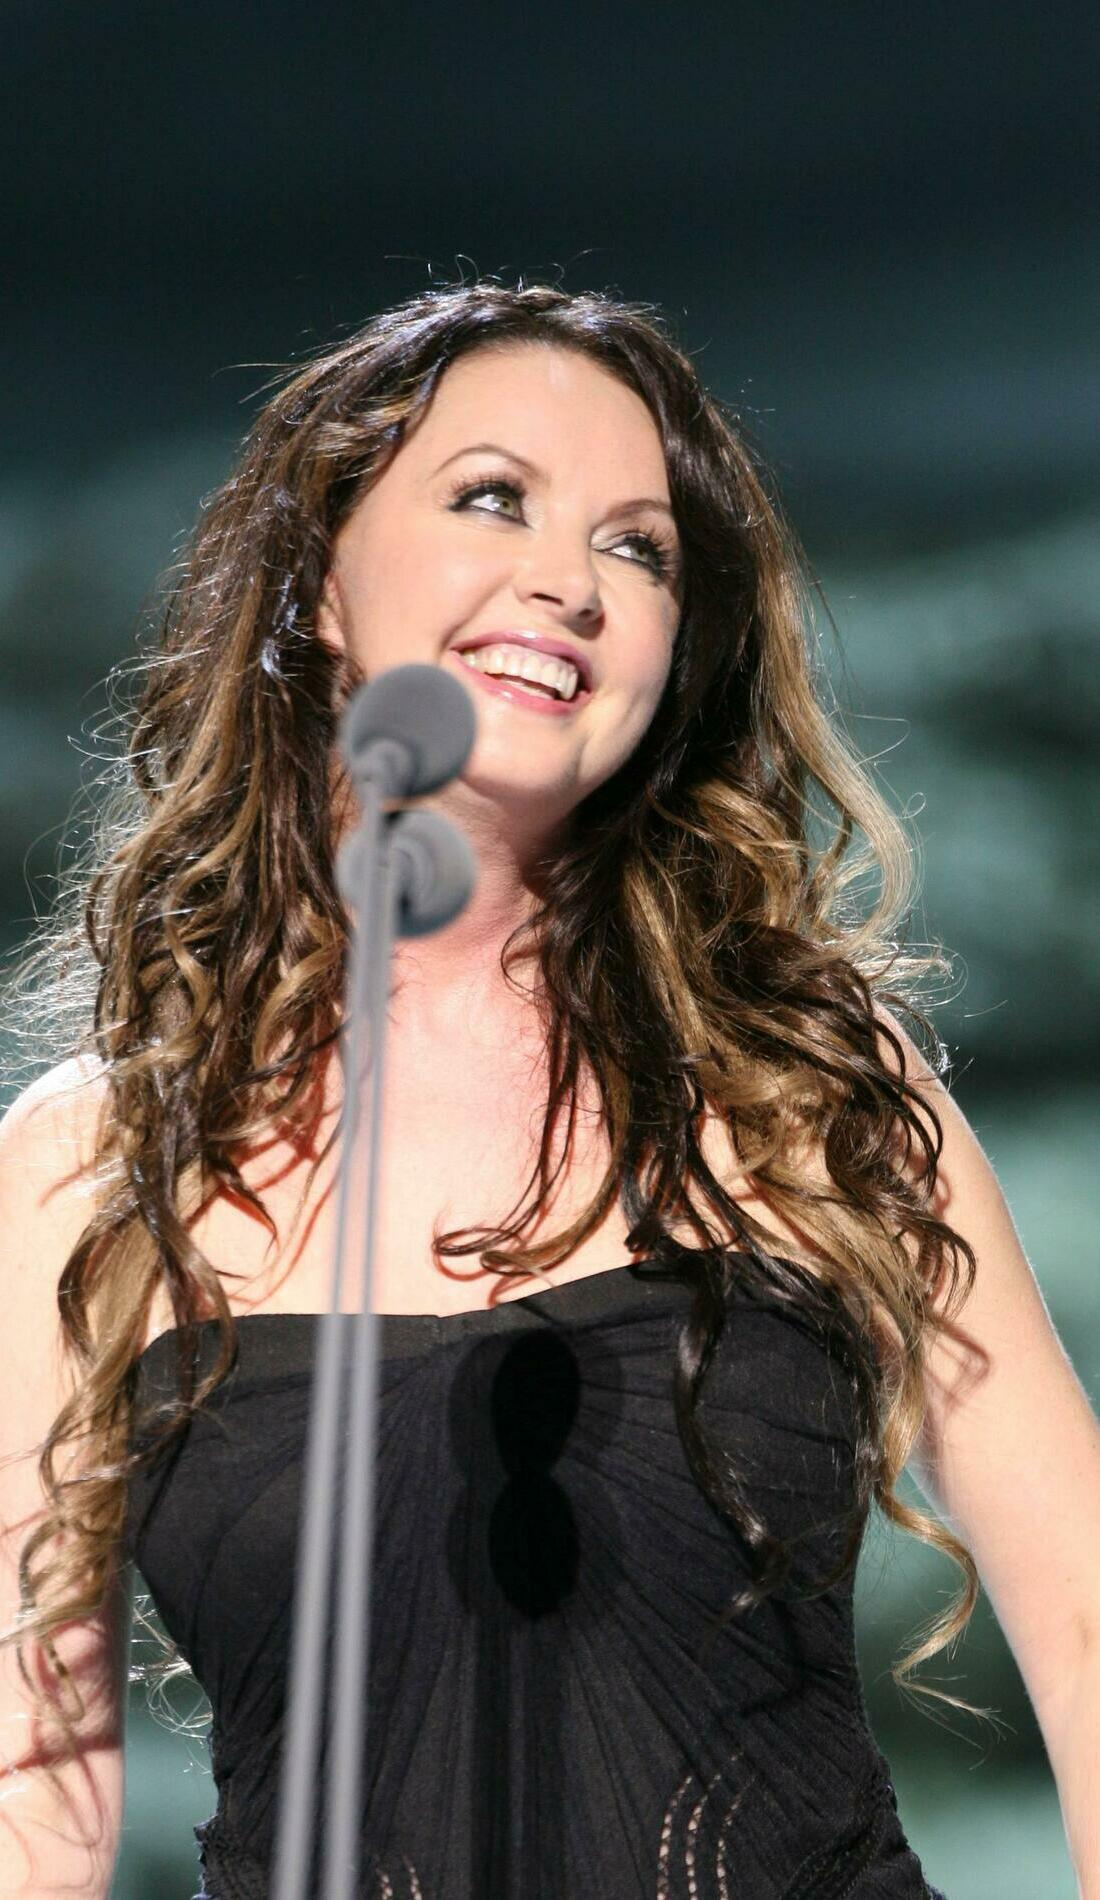 A Sarah Brightman live event